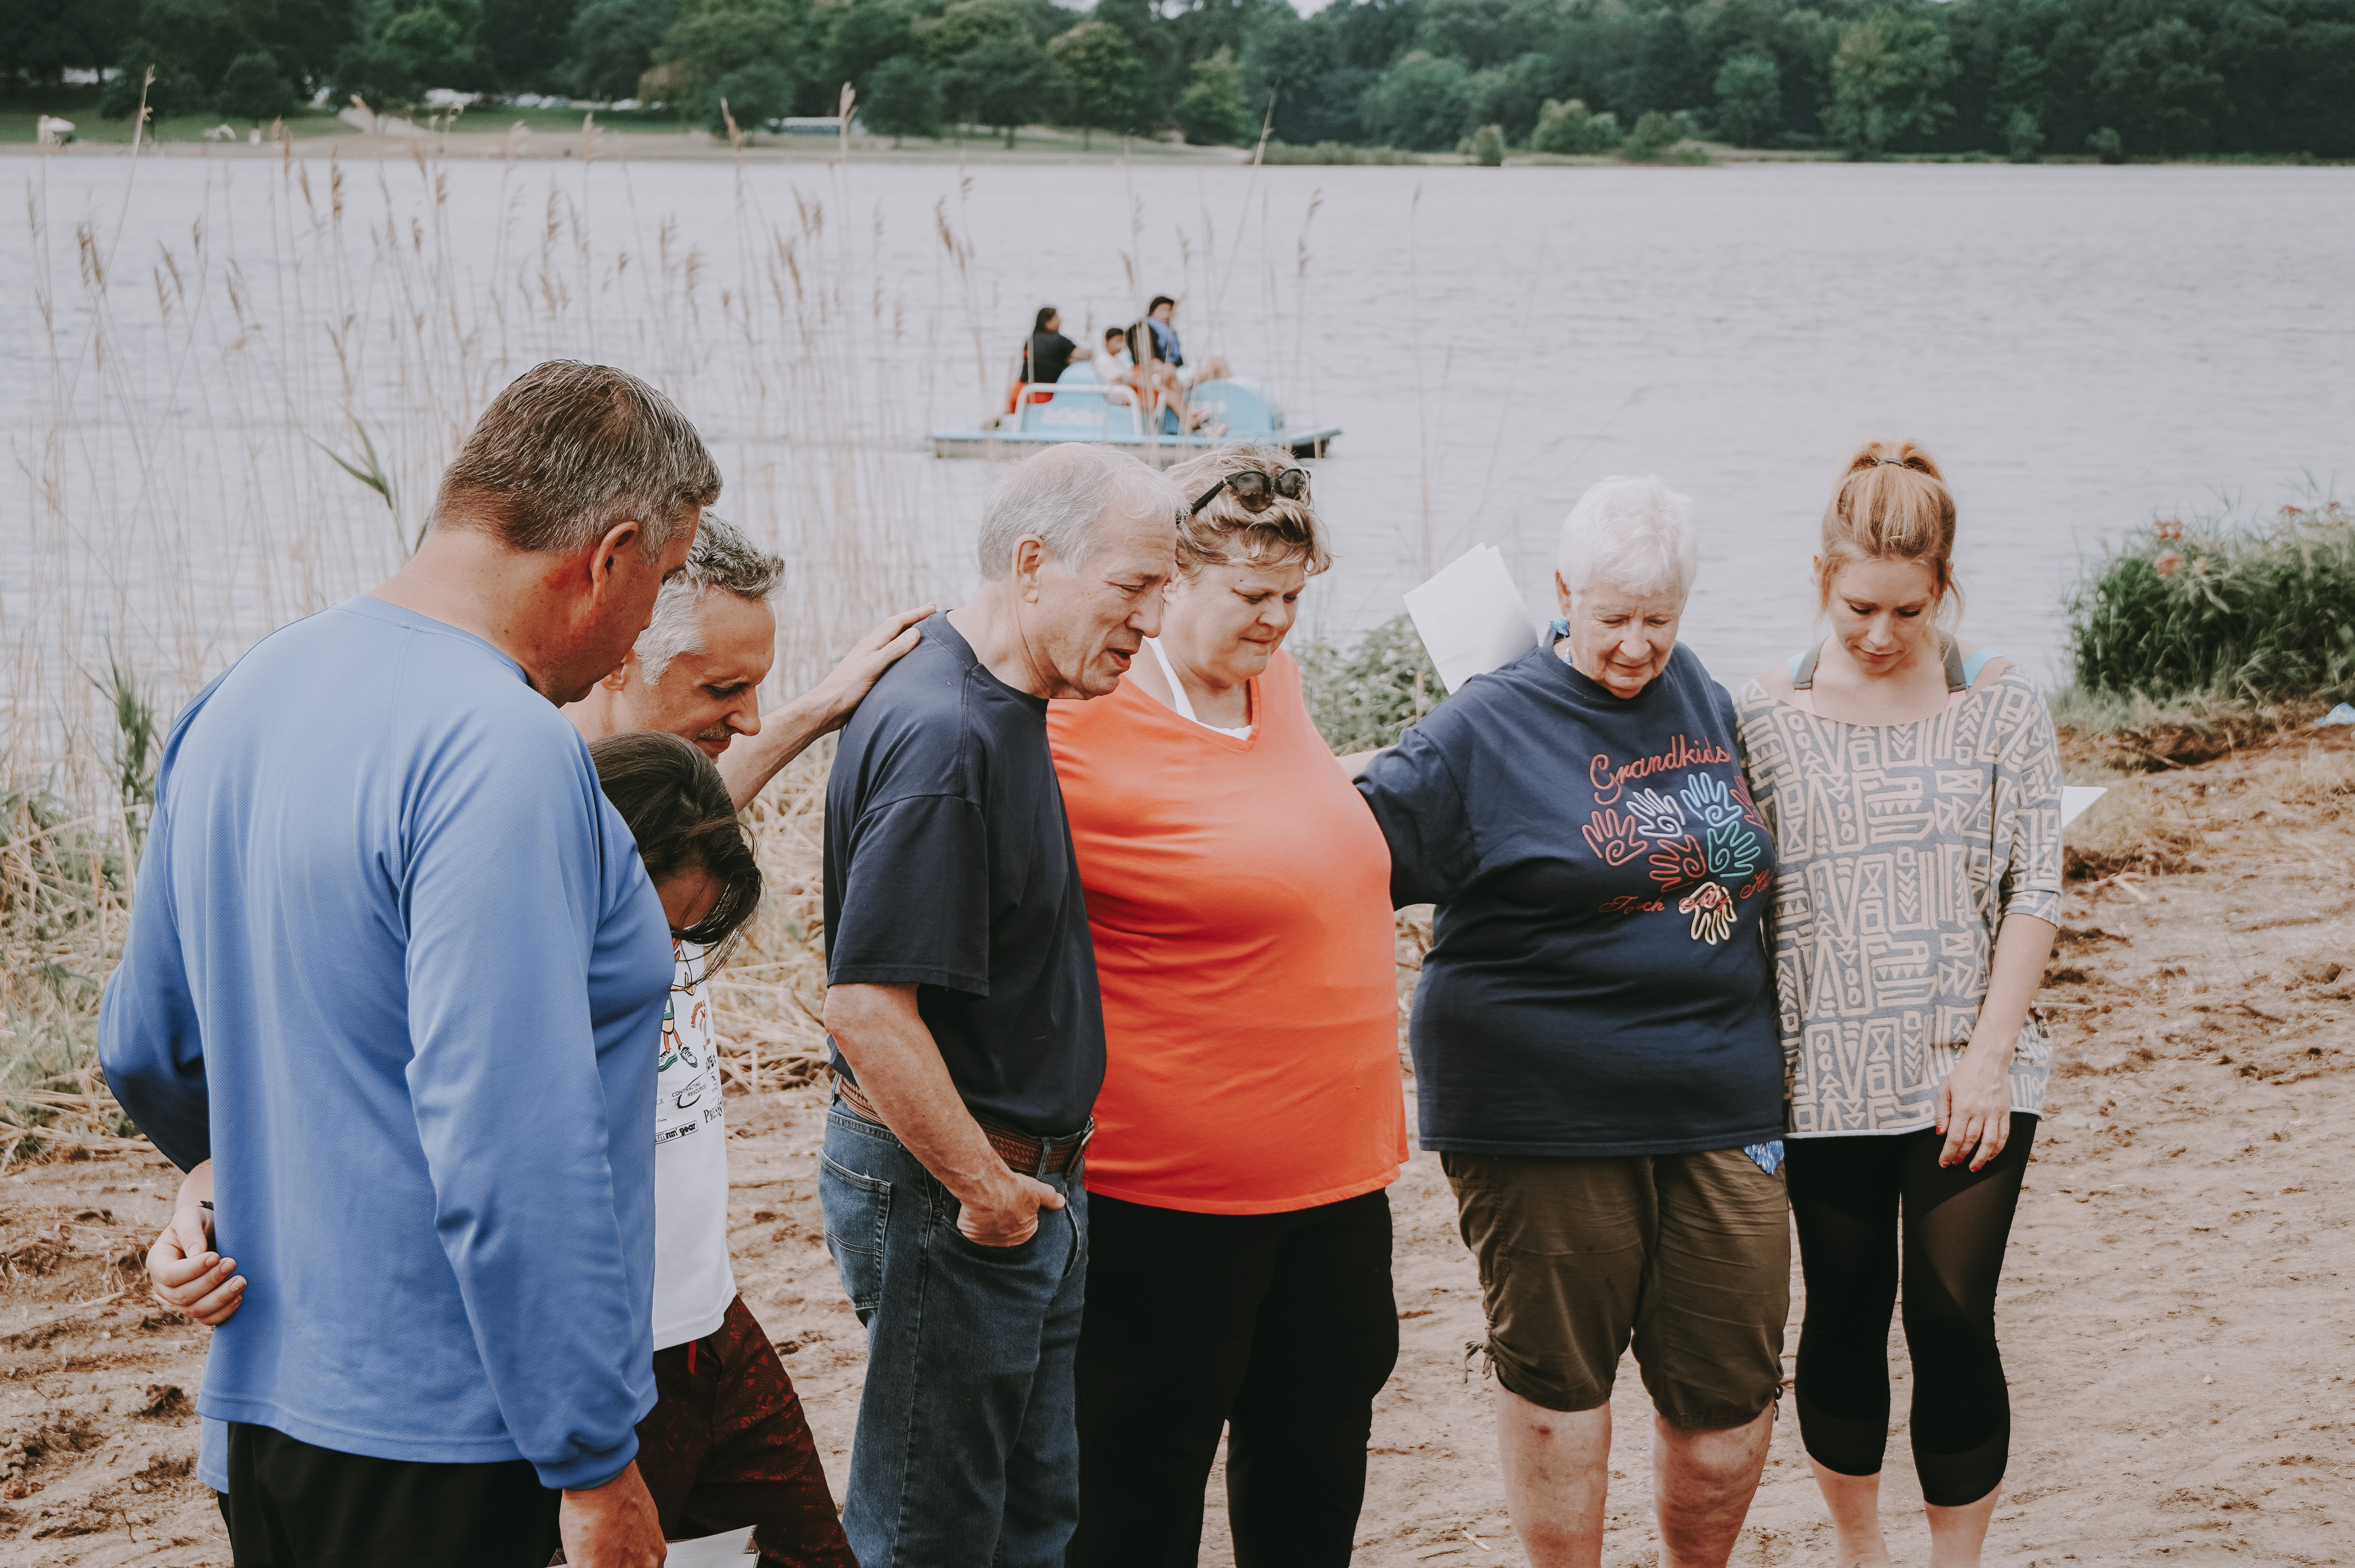 Members of the church praying before a baptism